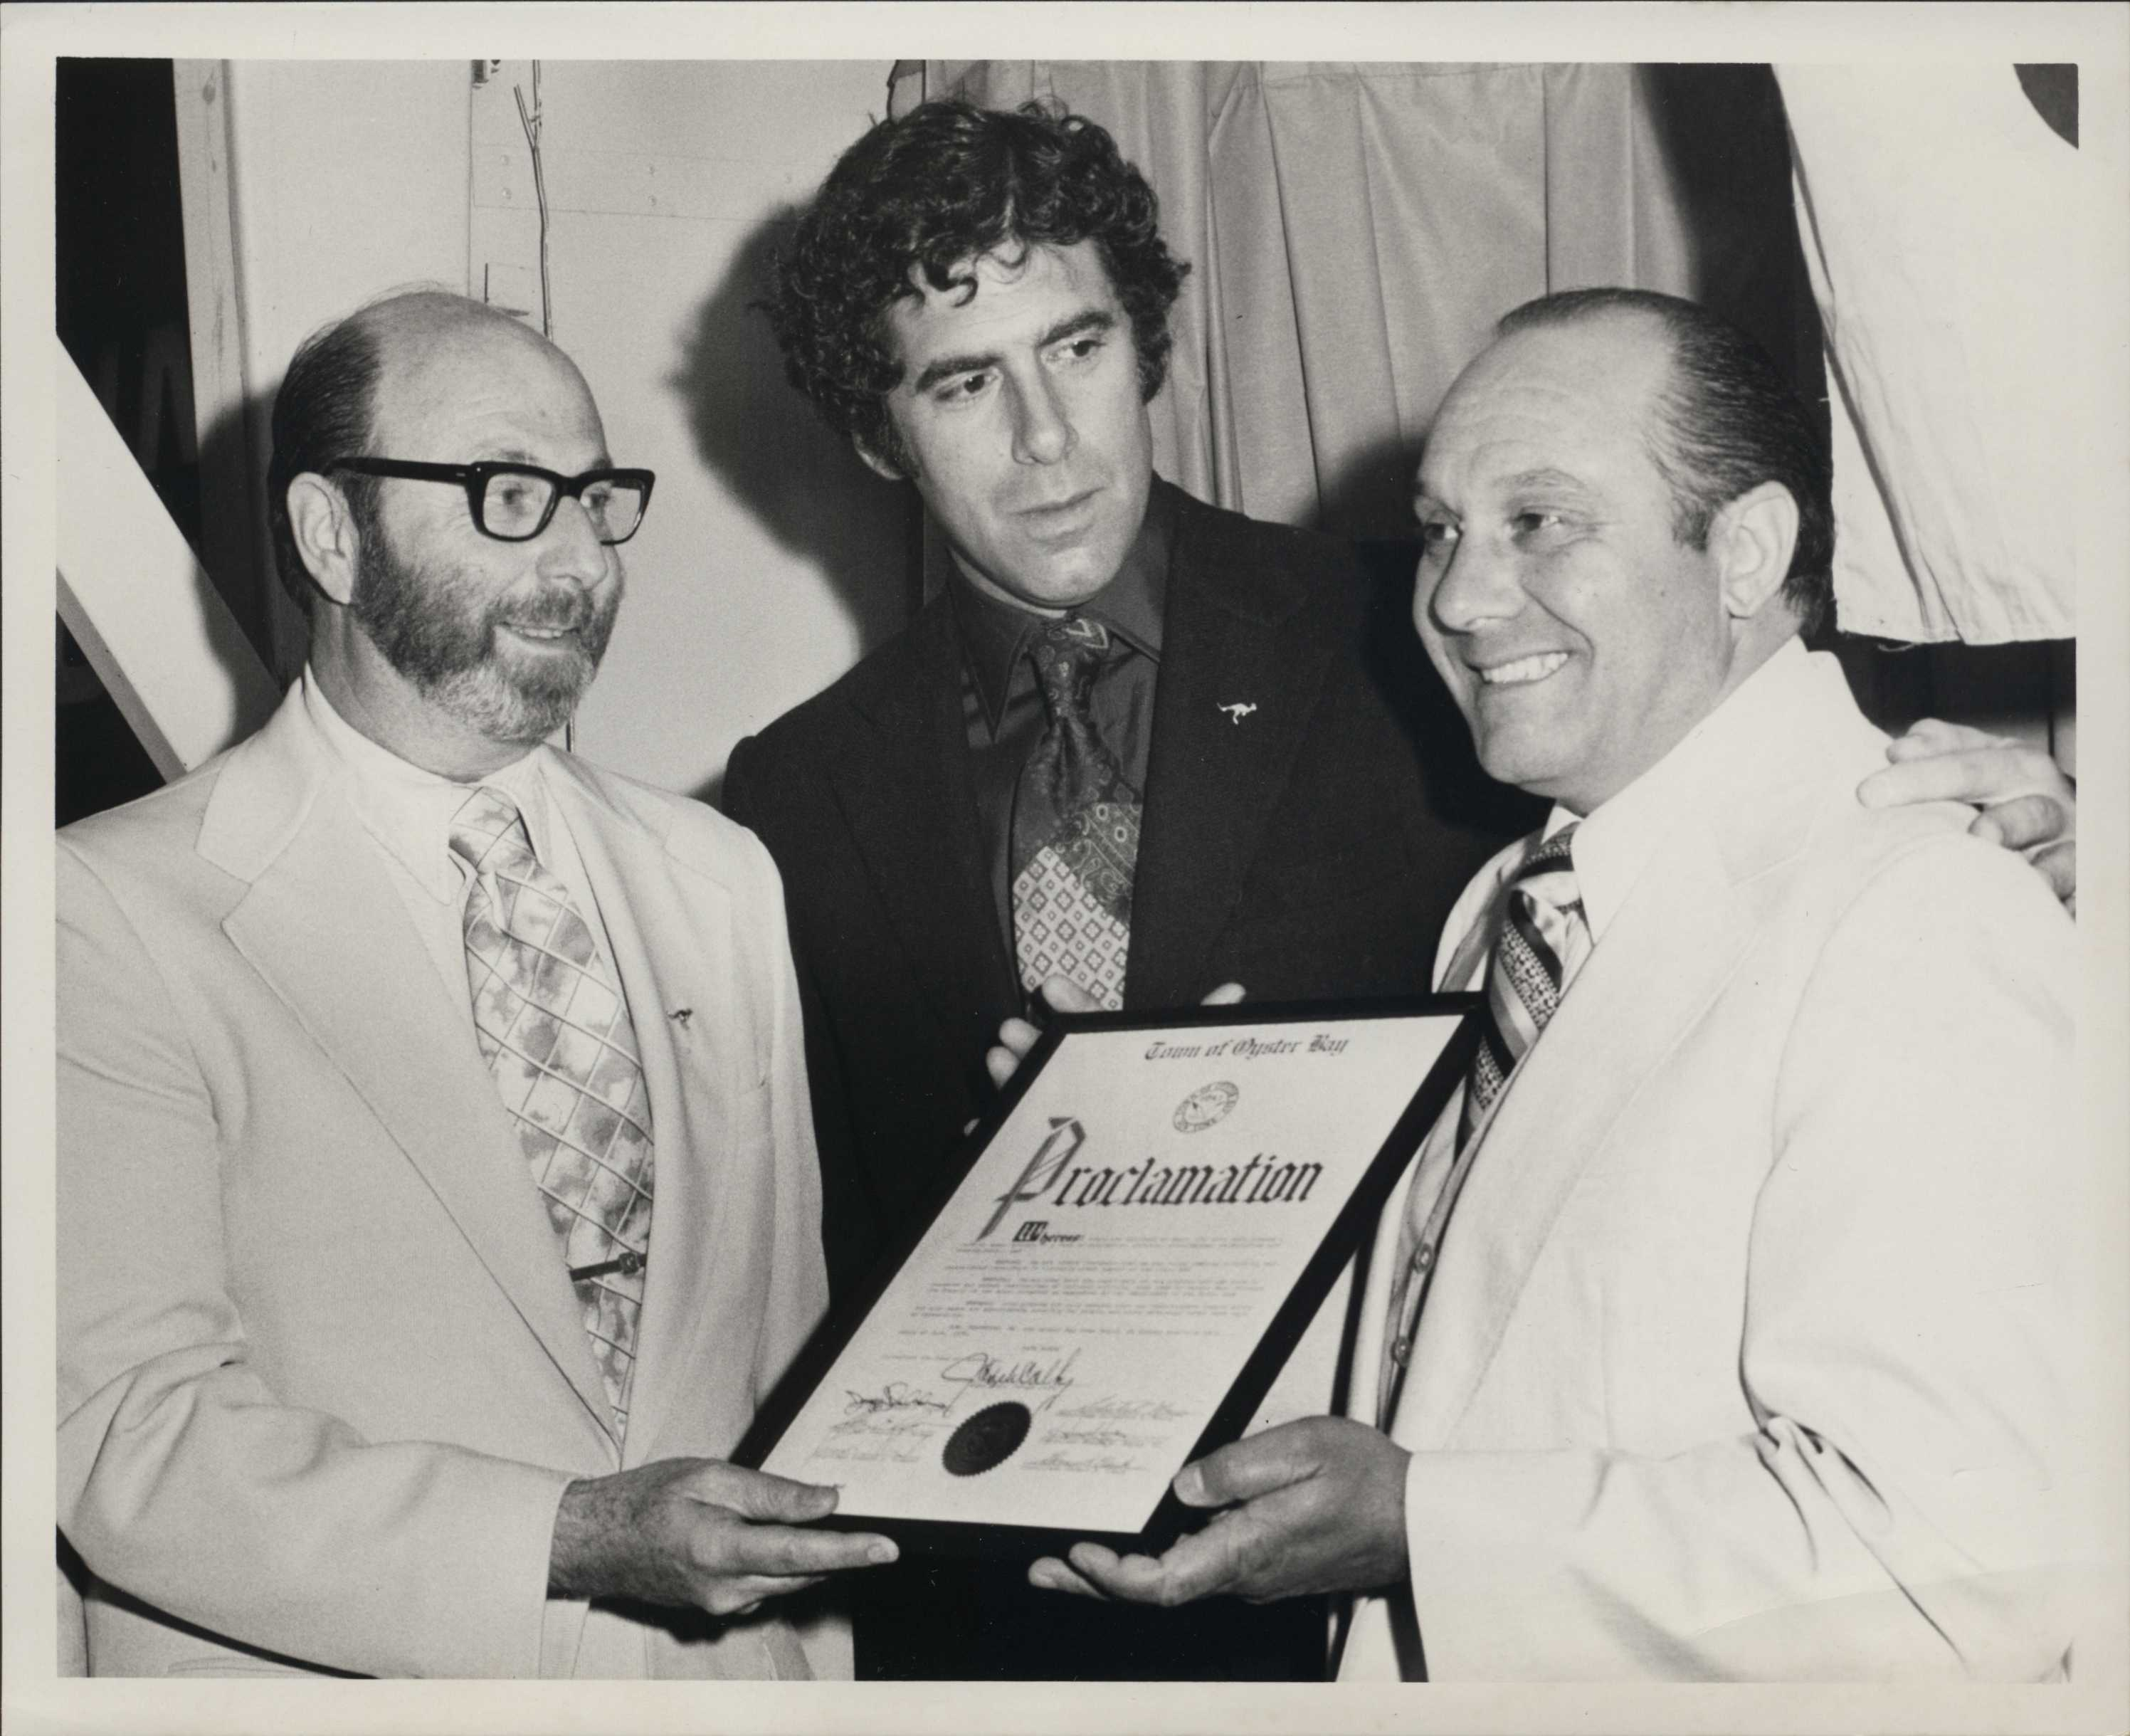 Joe Eisner, Elliot Gould, Proclamation.jpg